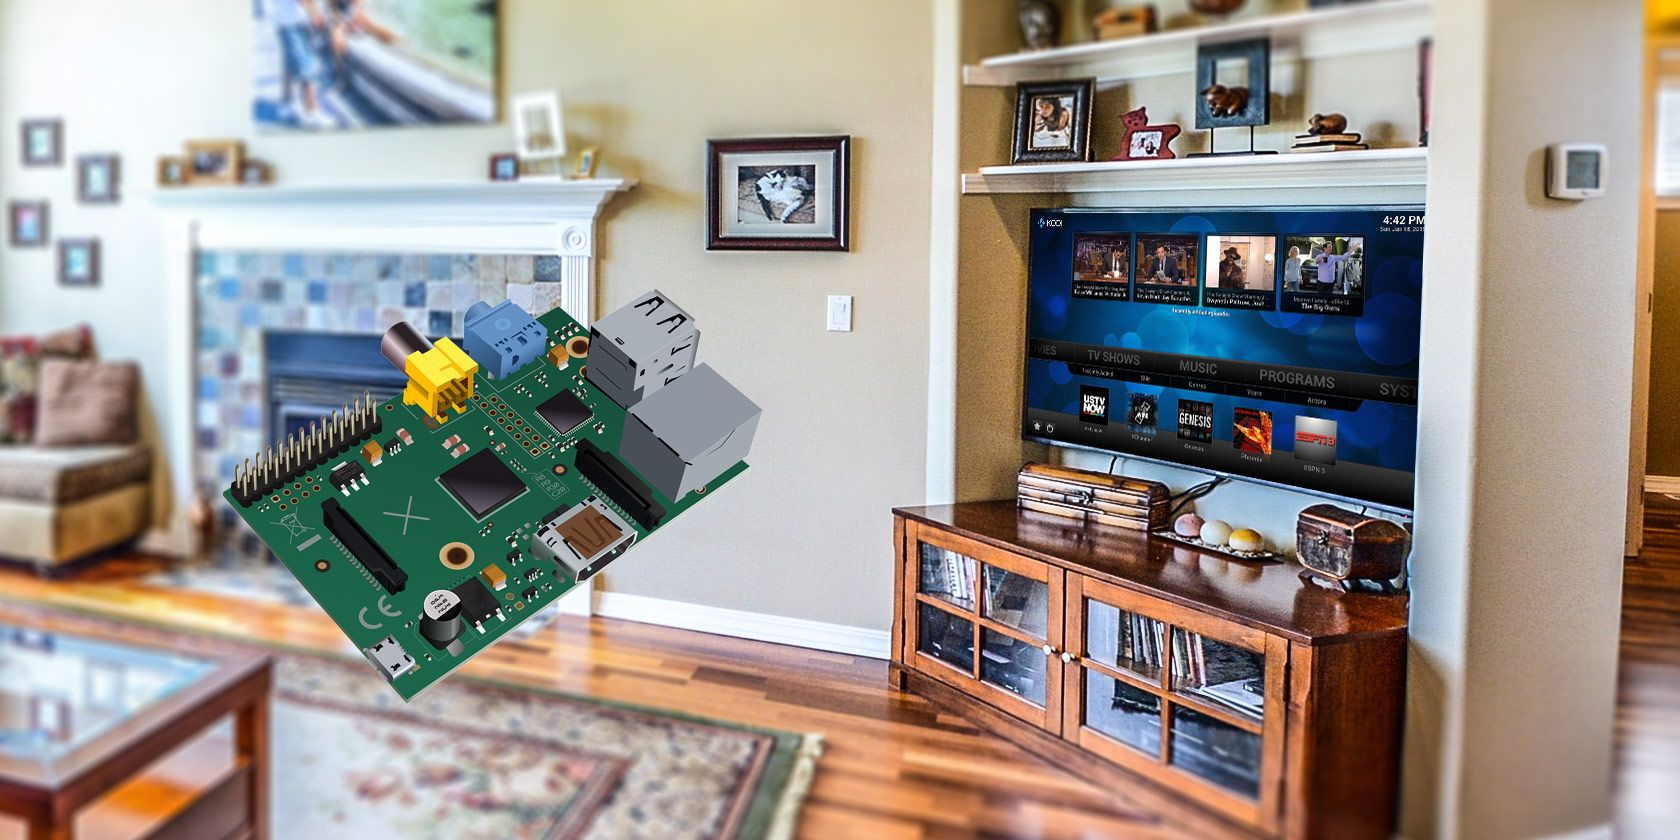 Kodi Smart Technology Yaflc Yet Another Flickering Led Candle Using Tiny45 Microcontroller Install To Turn Your Raspberry Pi Into A Home Media Center